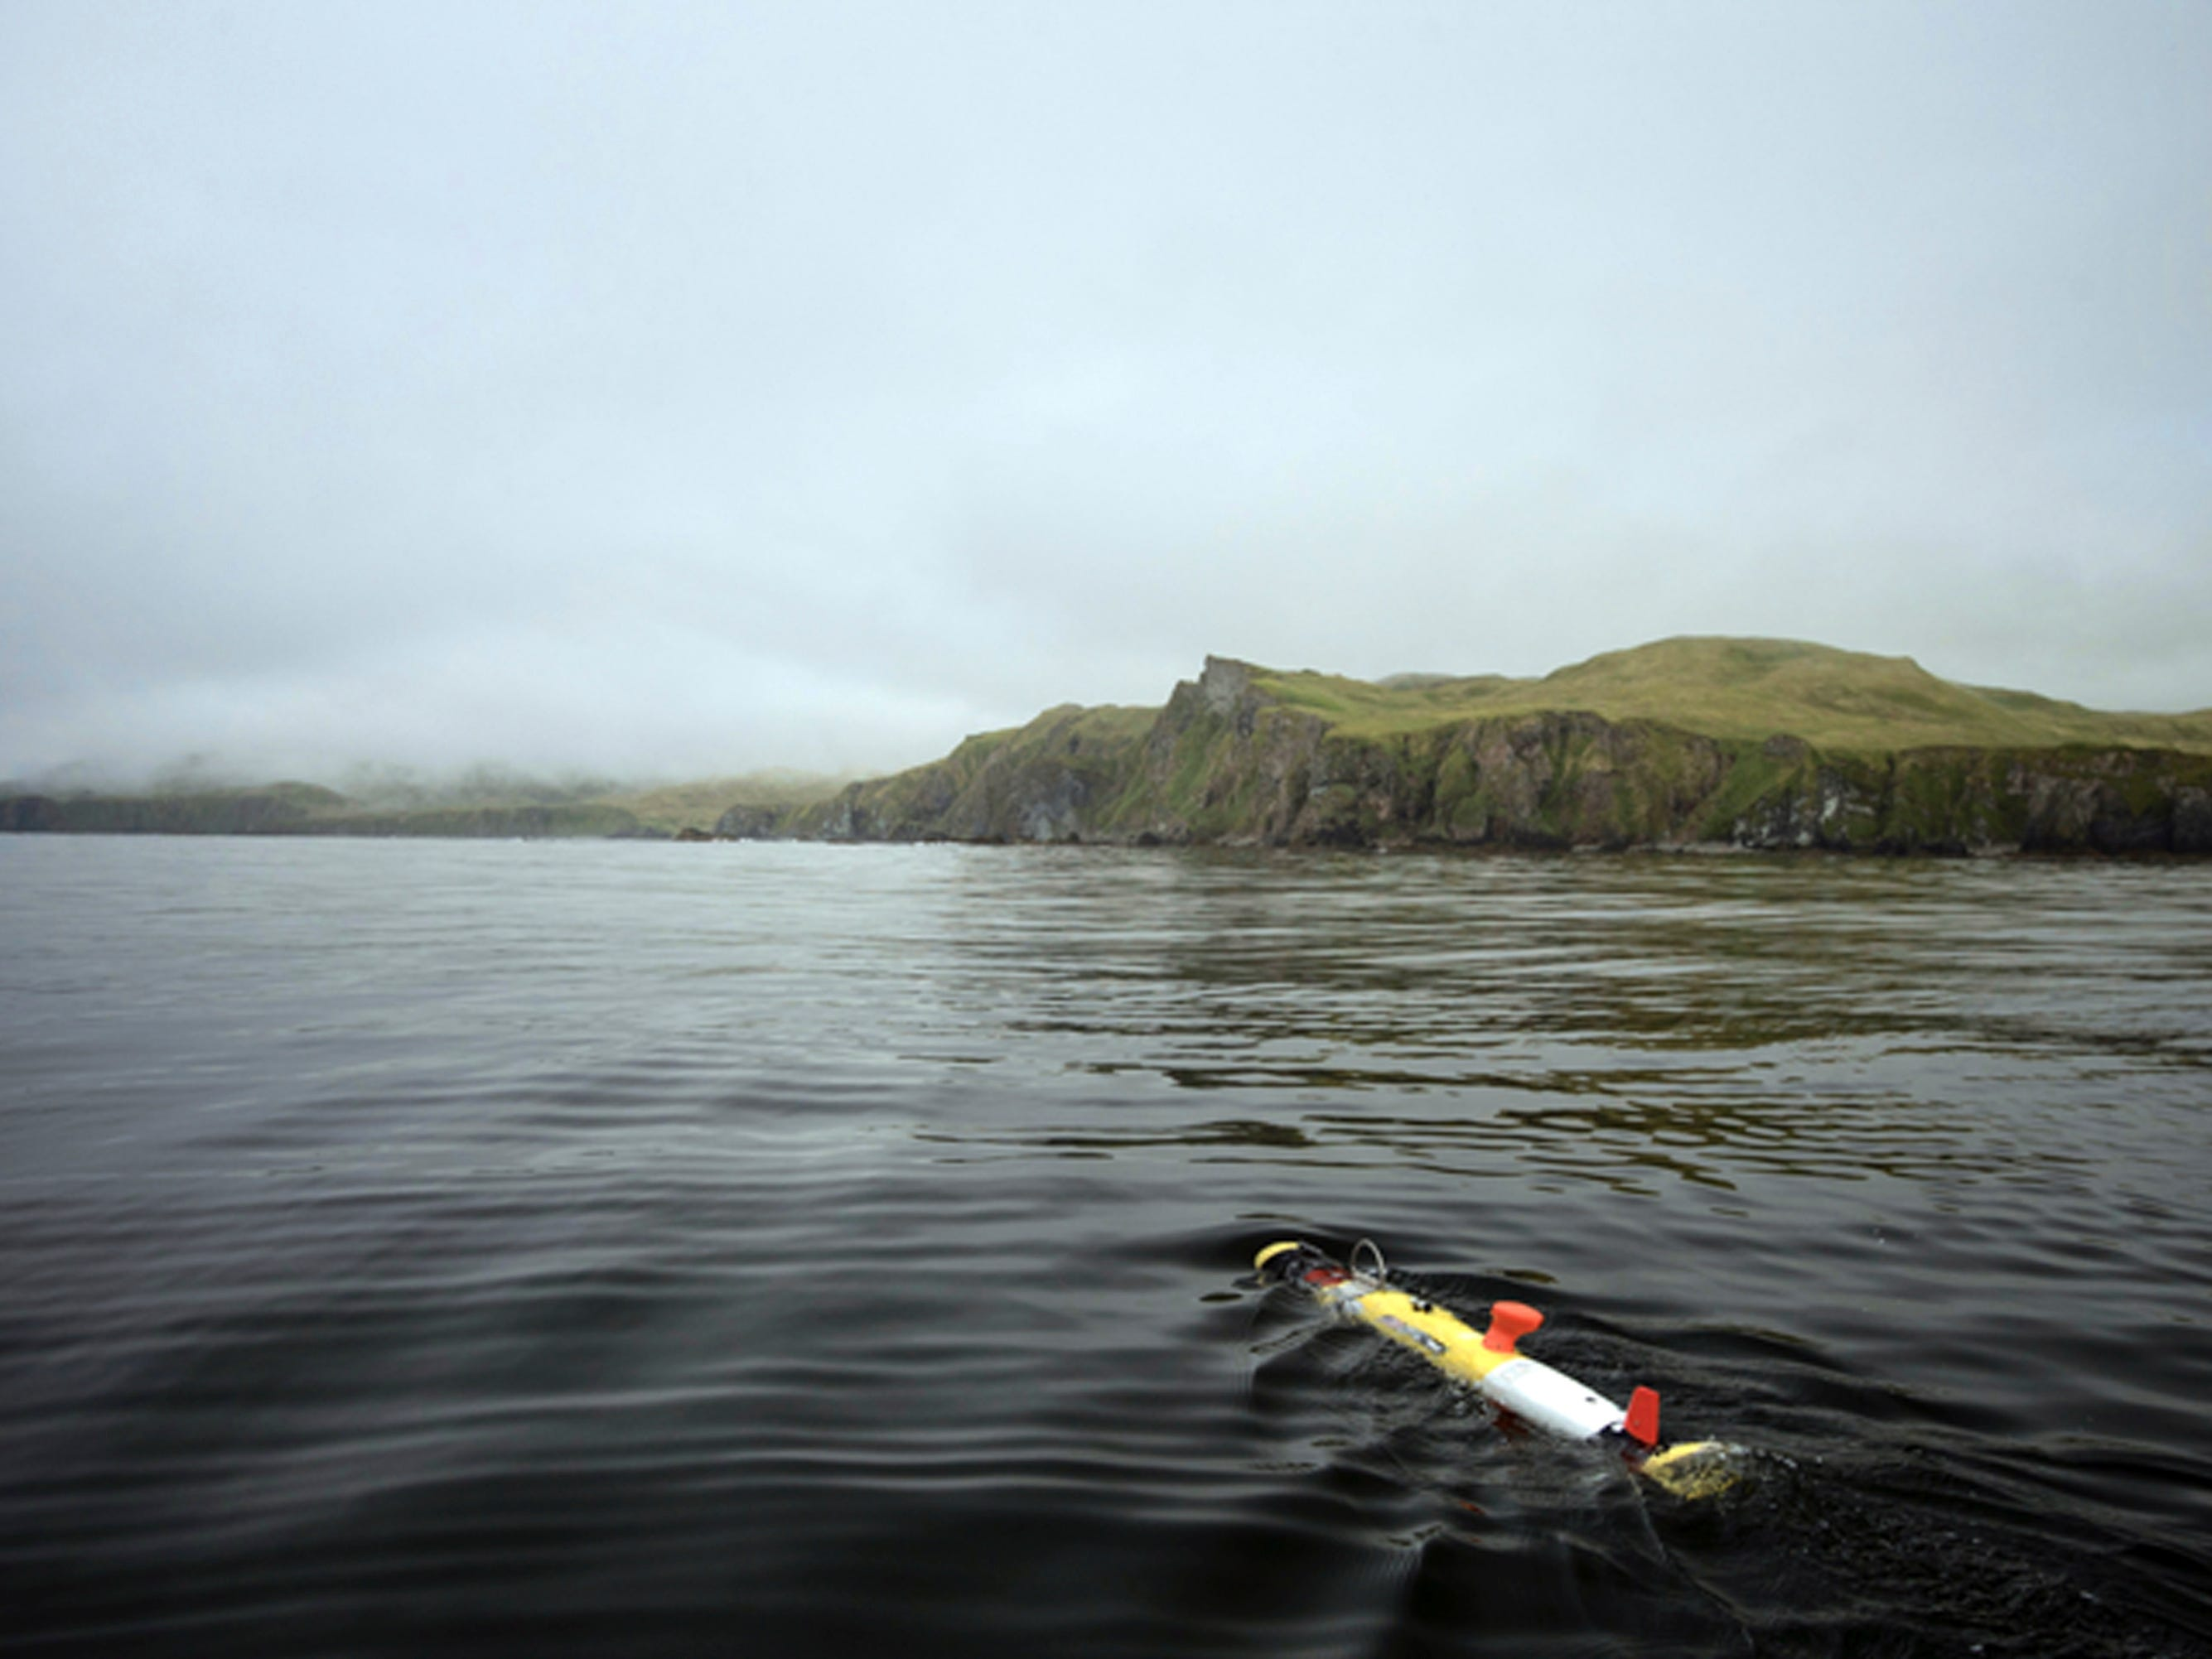 In this July 18, 2018 photo provided by Project Recover, a Remote Environmental Monitoring Units (REMUS) glides away from a research boat before diving beneath the surface where it spent the next six hours systematically scanning the seafloor, searching for the stern of the destroyer USS Abner Read in the waters off Kiska Island, Alaska. The Abner Read hit a mine left by the Japanese after they abandoned Kiska Island in Alaska's Aleutian Islands in 1943, ripping the stern off. But the ship never sank and was refitted and returned to duty. Now, 75 years after the ship's stern broke off, it has been located off Kiska by a team of scientists funded by the U.S. government. (Project Recover via AP)